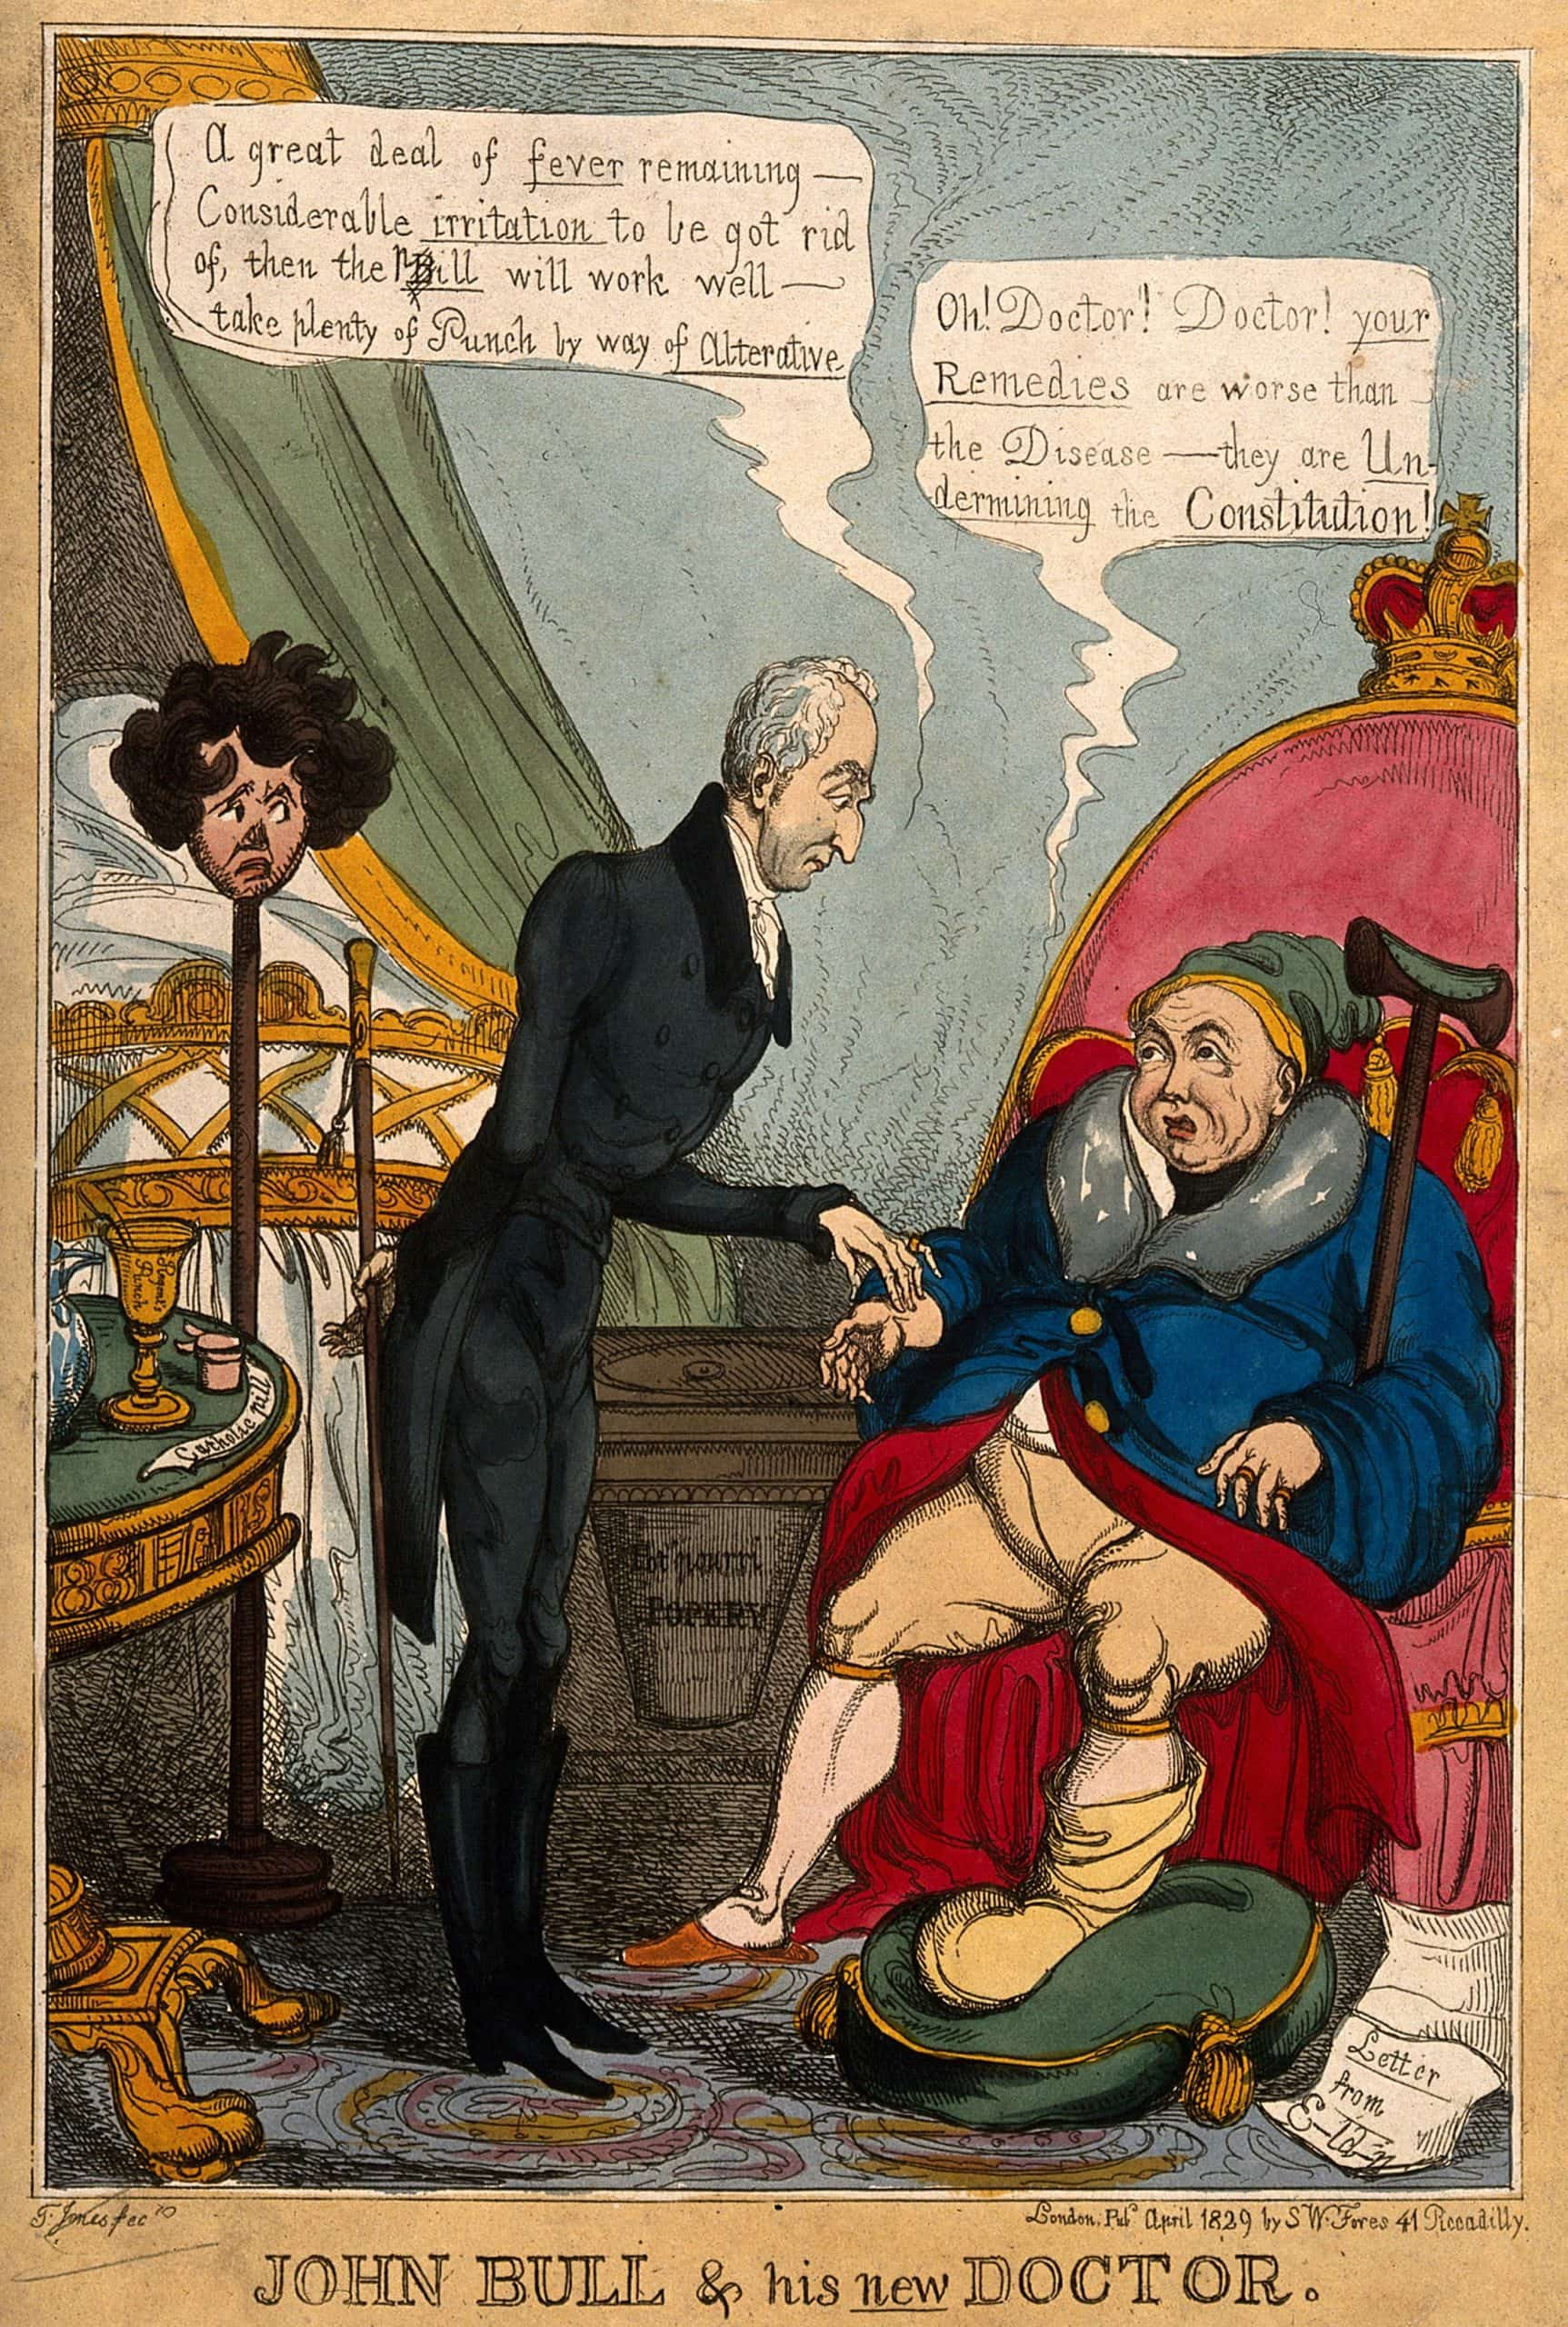 John Bull and his new doctor